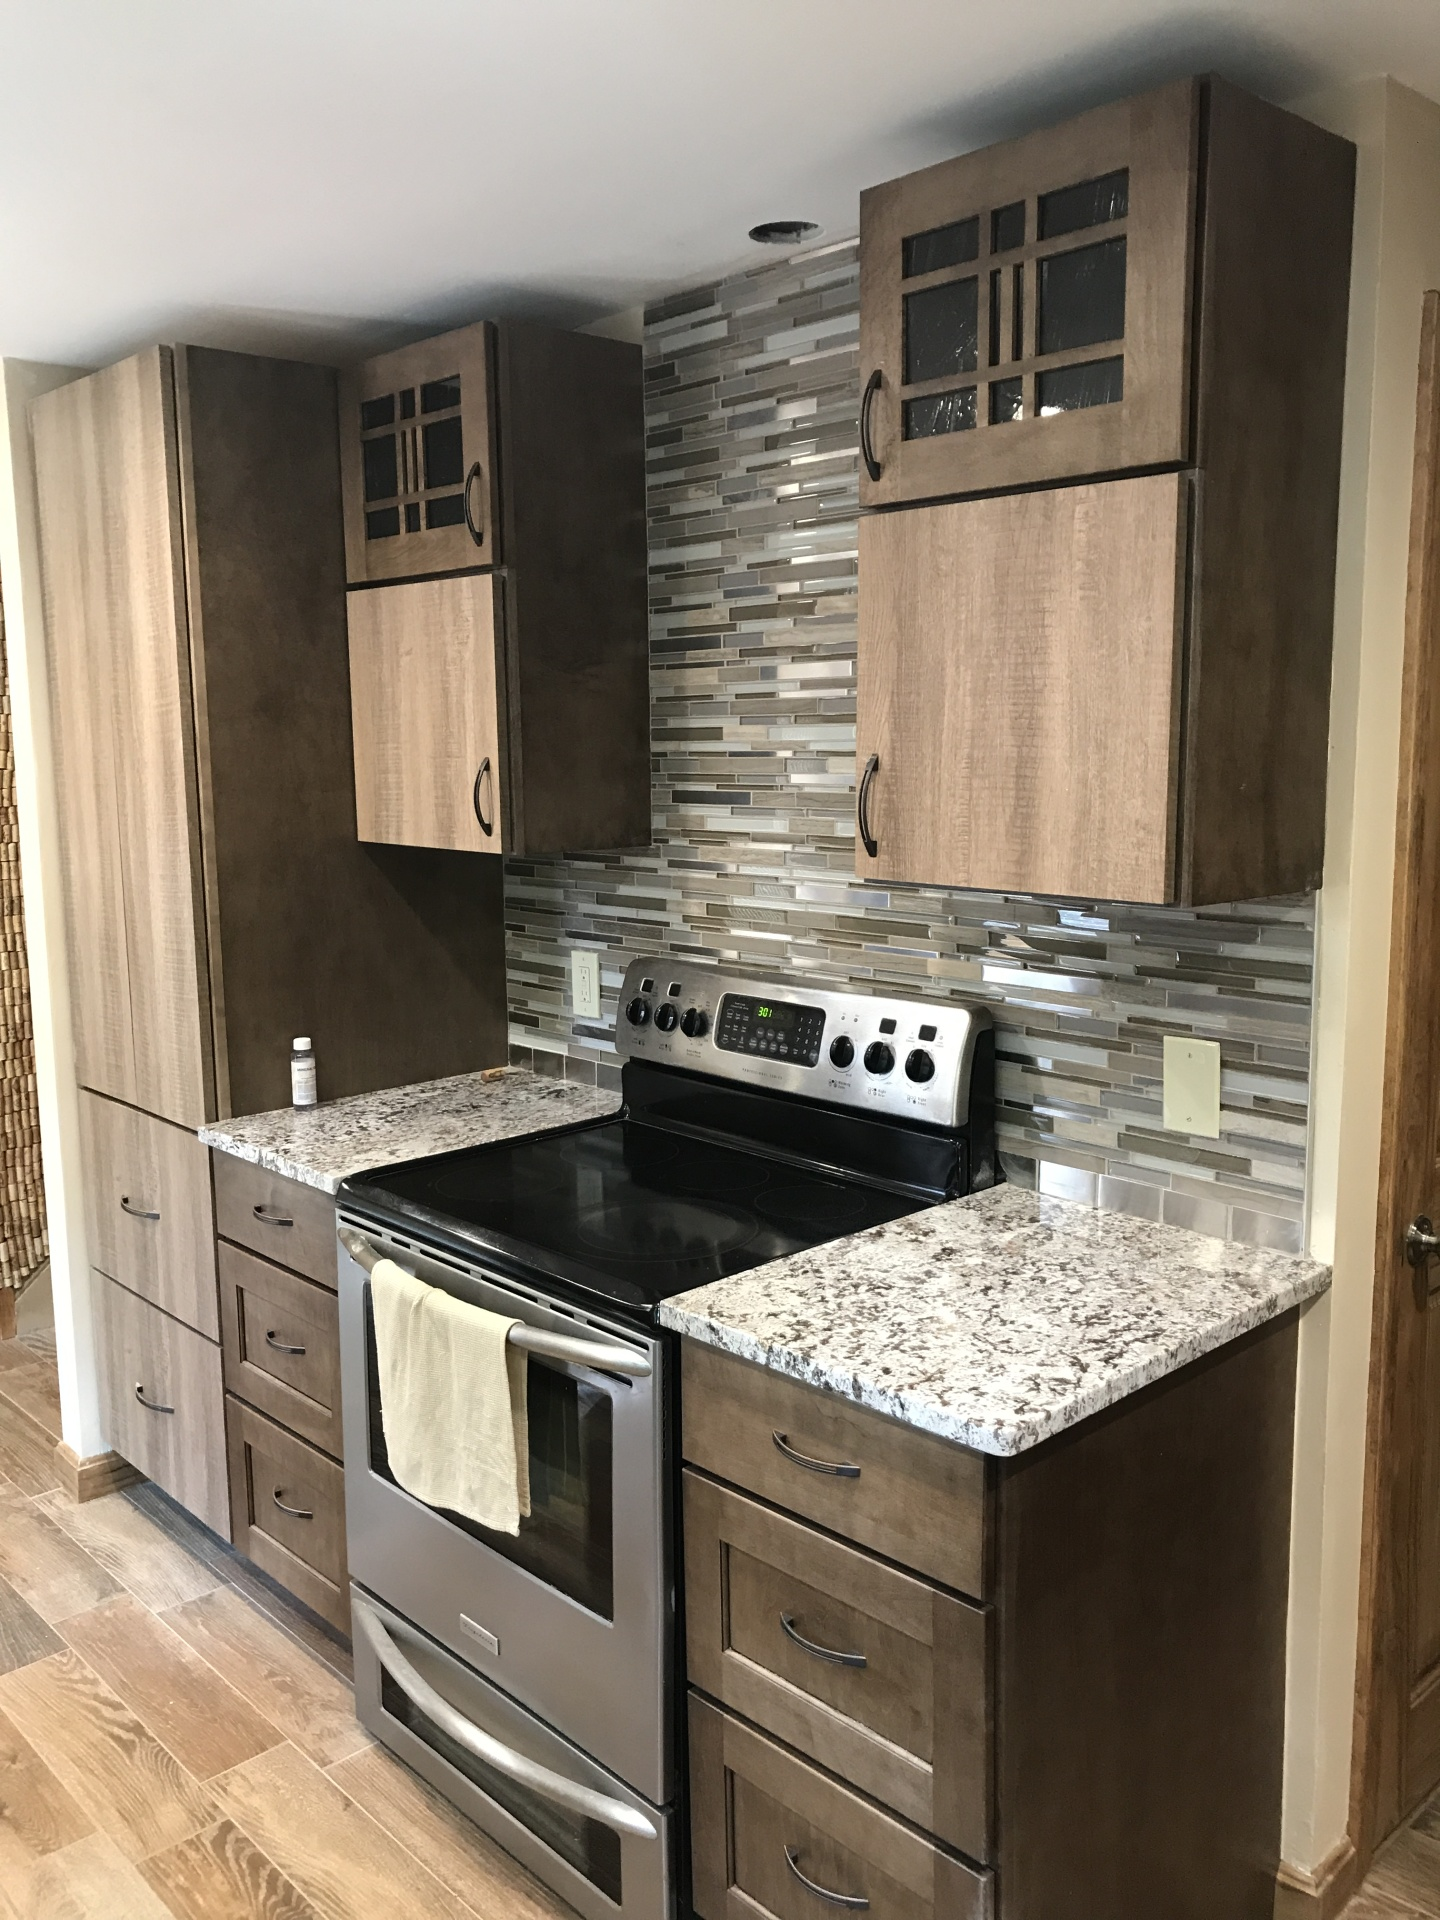 replaced plumbing, replaced kitchen cabinets, replaced kitchen lights